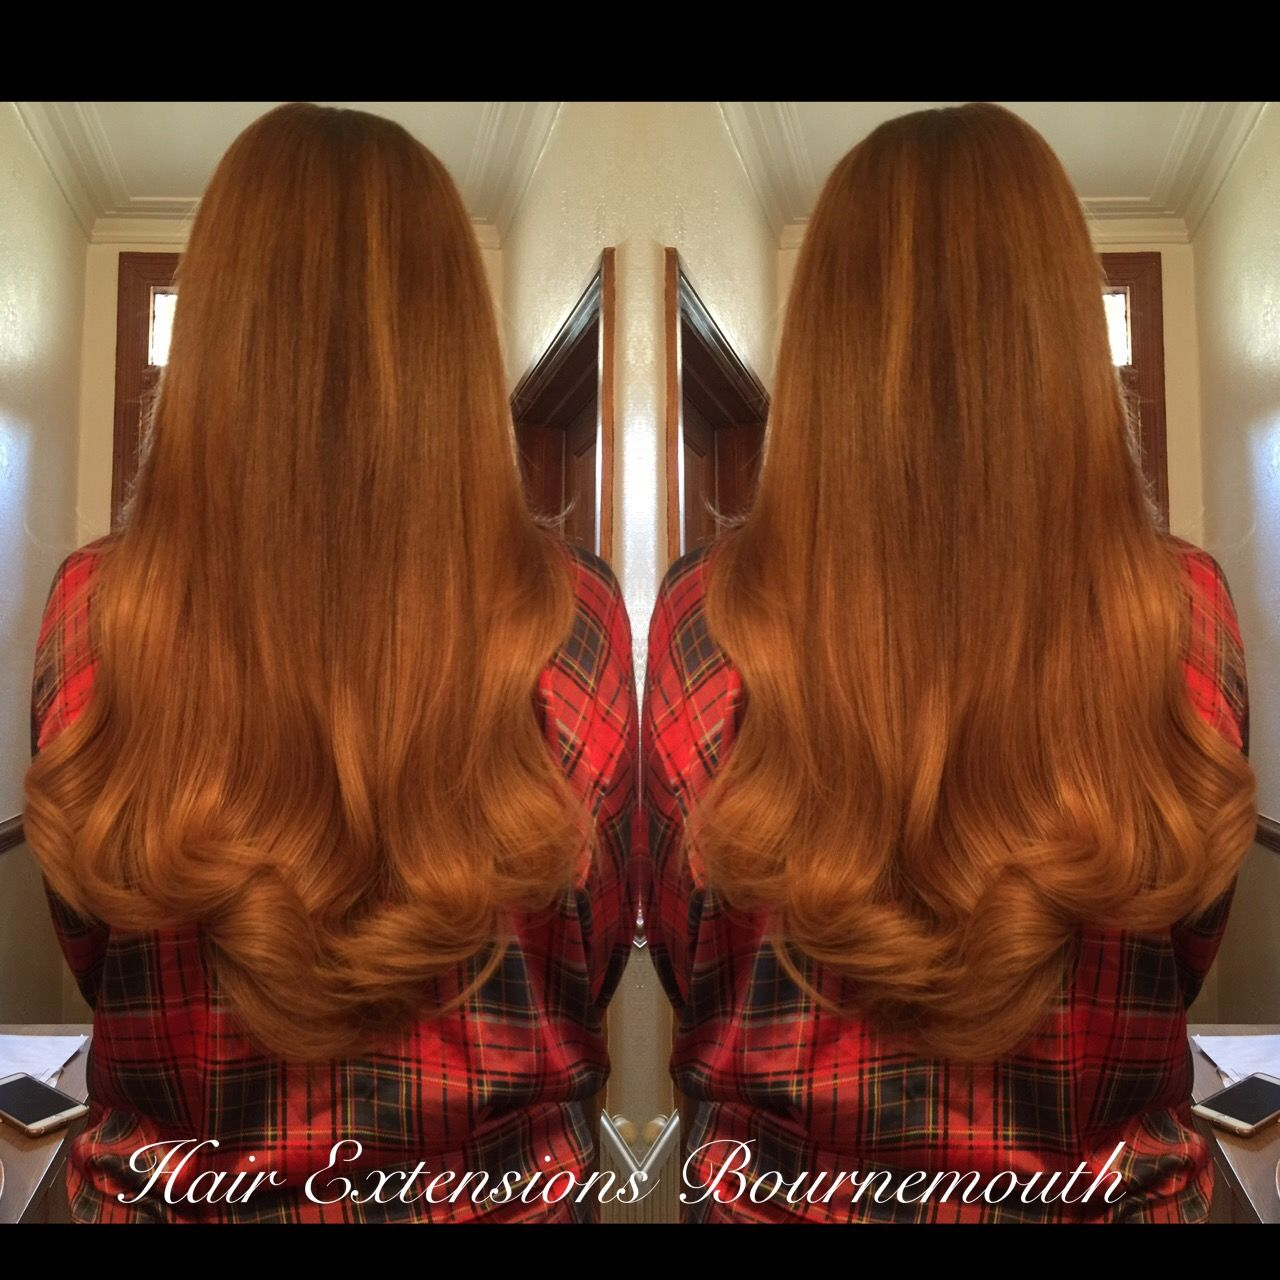 #BeautyWorks #HairExtensionsBournemouth #Balayage #Blonde #HairExtensions #MicroWeft #VintageWaves